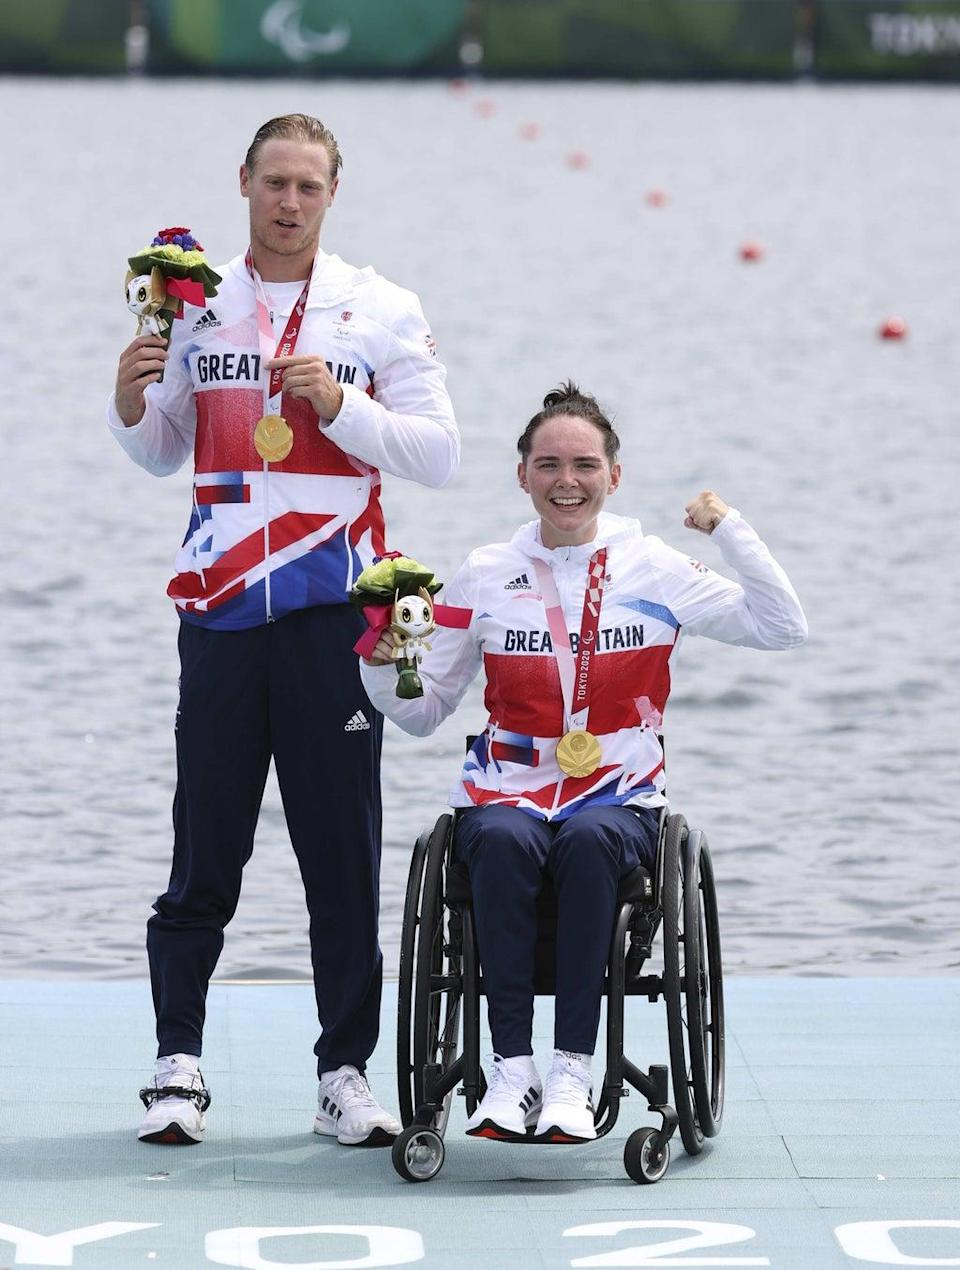 ParalympicsGB Rowers, Lauren Rowles and Laurence Whiteley (imagecommsralympicsGB) (PA Media)